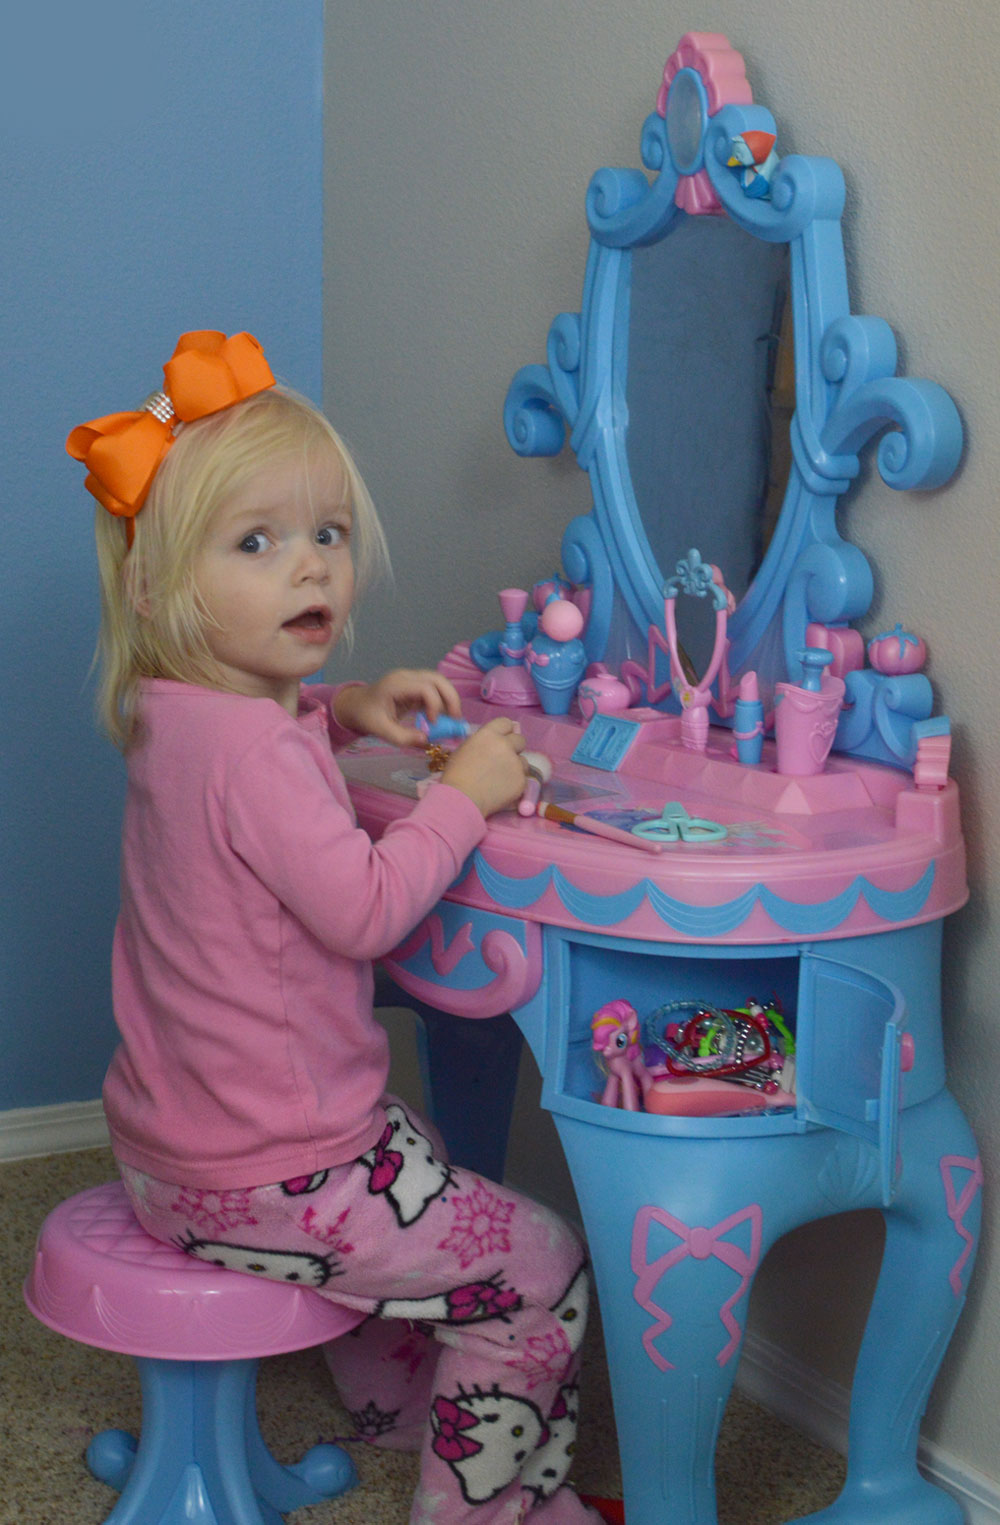 Kids bedroom makeup vanity mermaid theme - Mommy Scene